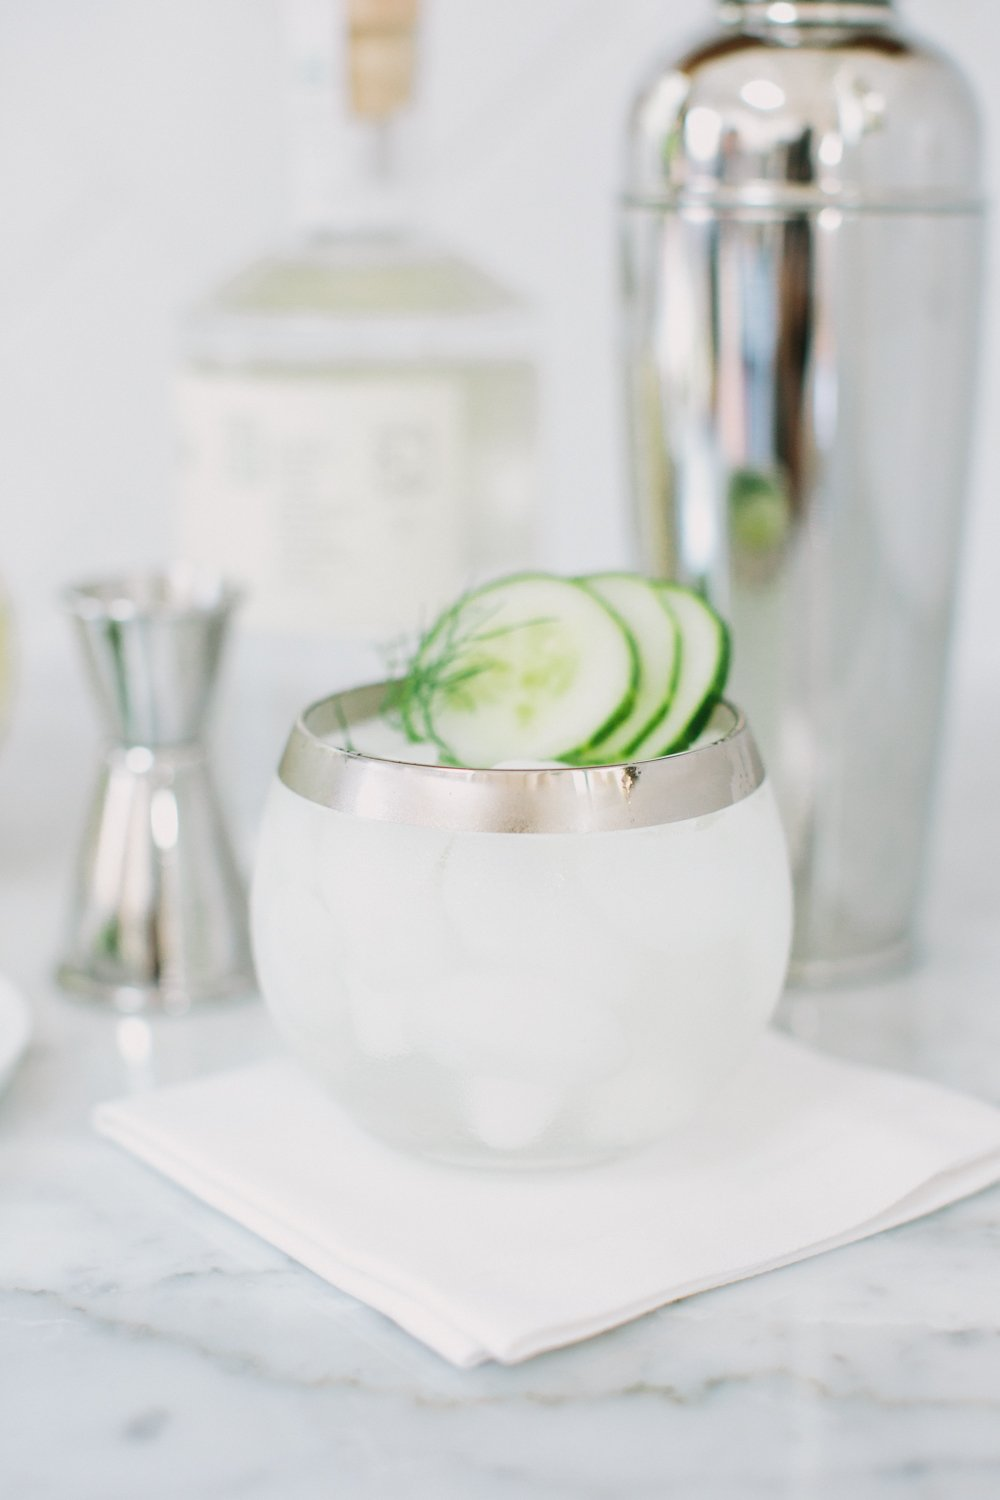 Short cocktail garnished with mint and cucumber on a marble surface